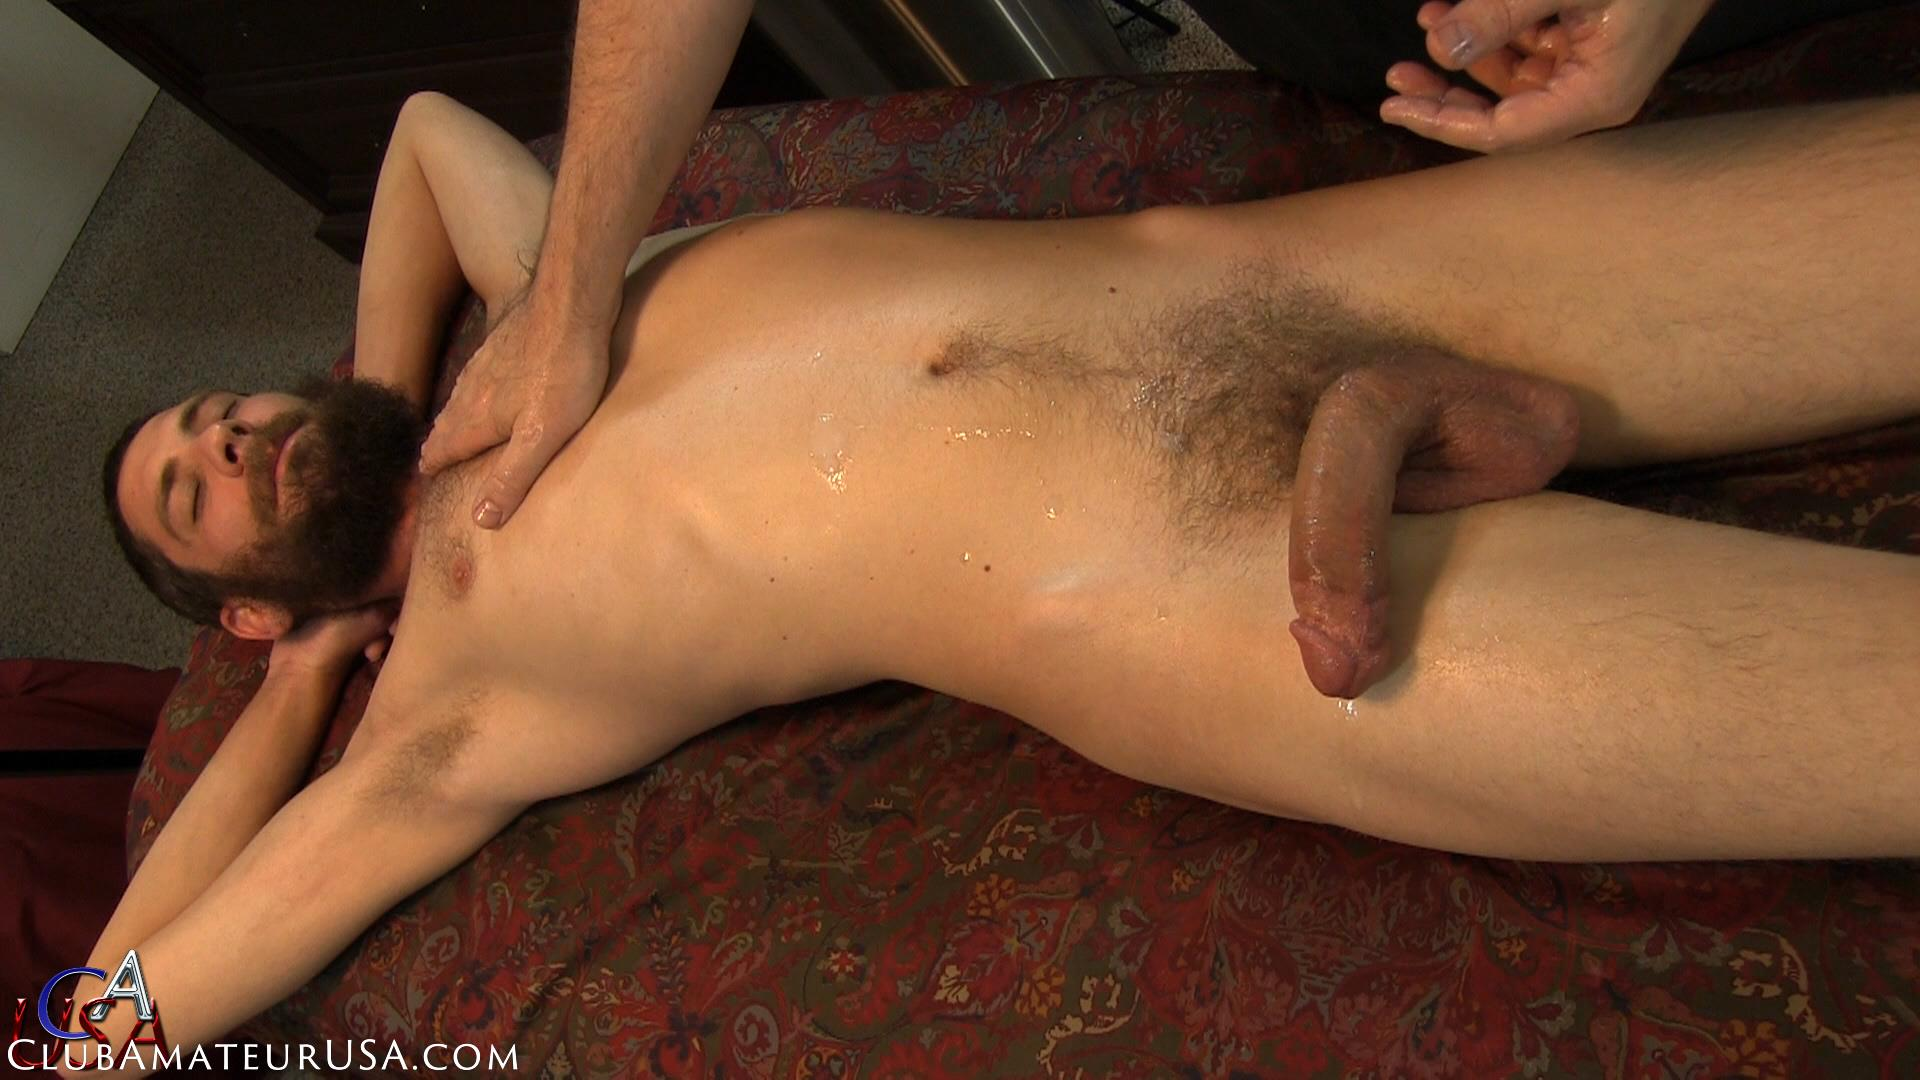 Club-Amateur-USA-Wyatt-Straight-Redneck-Getting-Jerked-Off-Amateur-Gay-Porn-28 Amateur Straight Redneck Gets Jerked Off By Another Guy